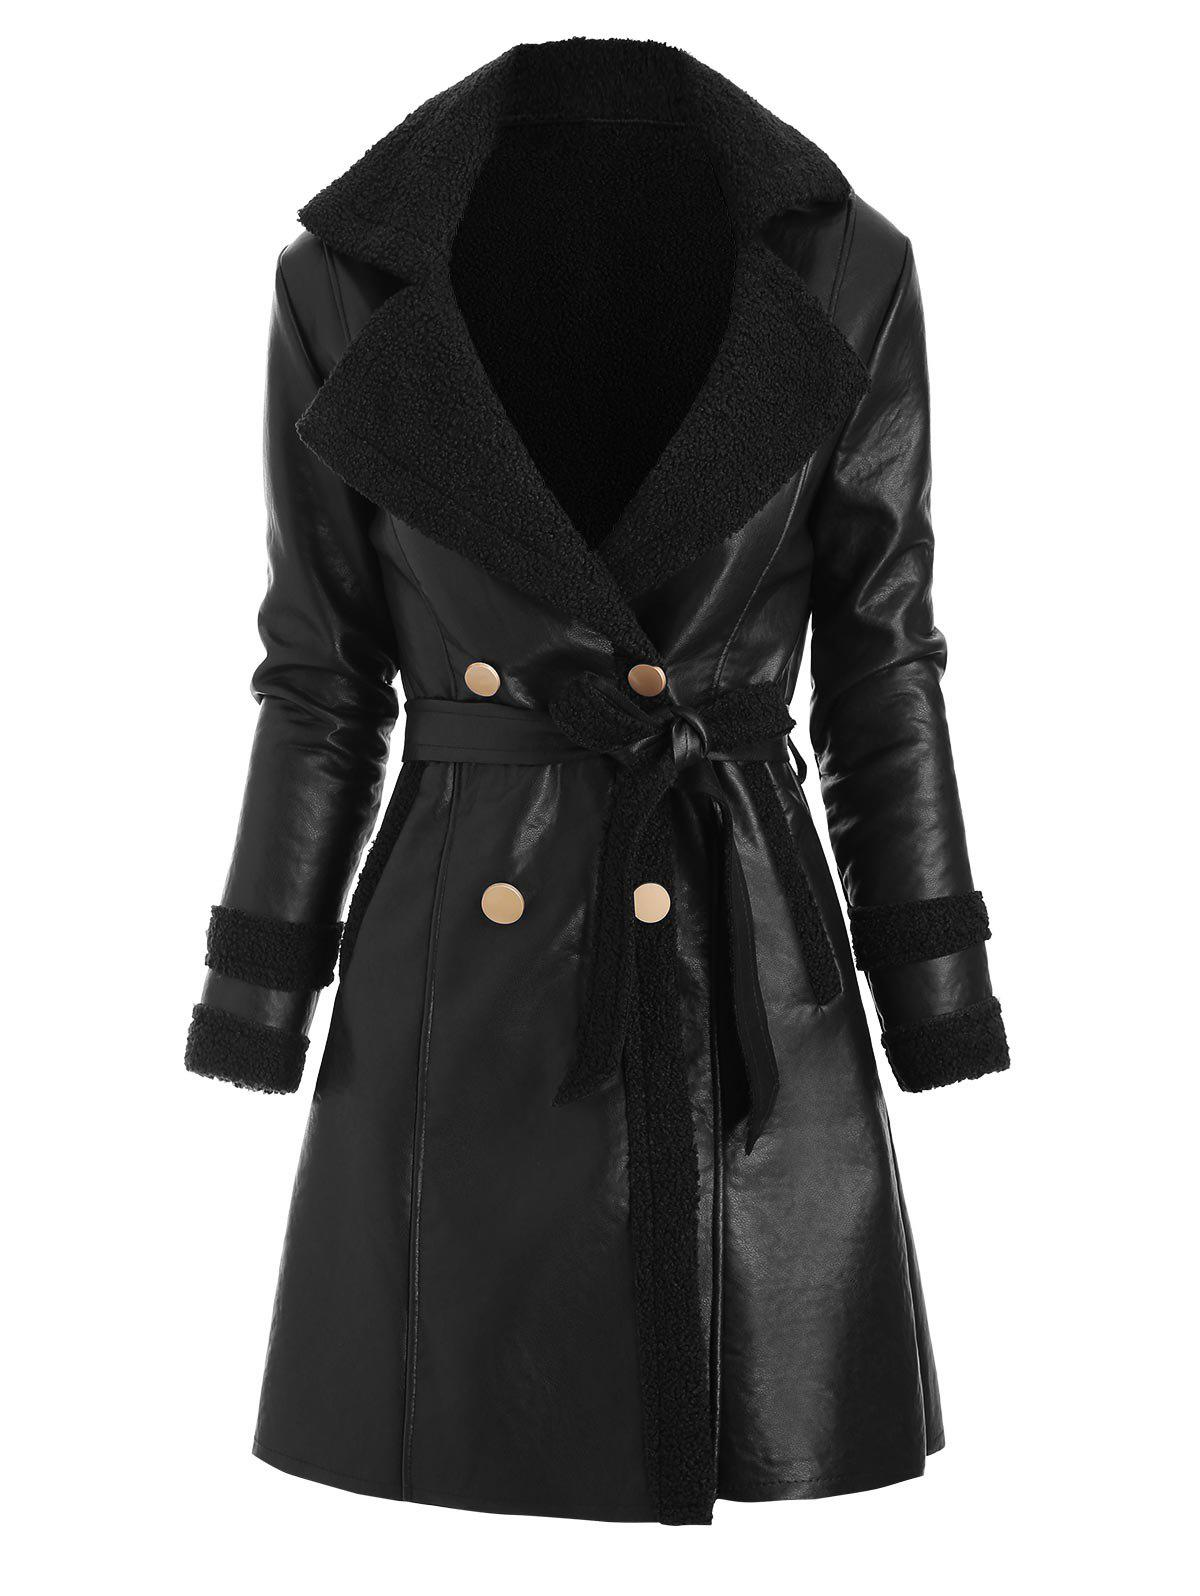 Buy Faux Leather Shearling Insert Pocket Belted Coat